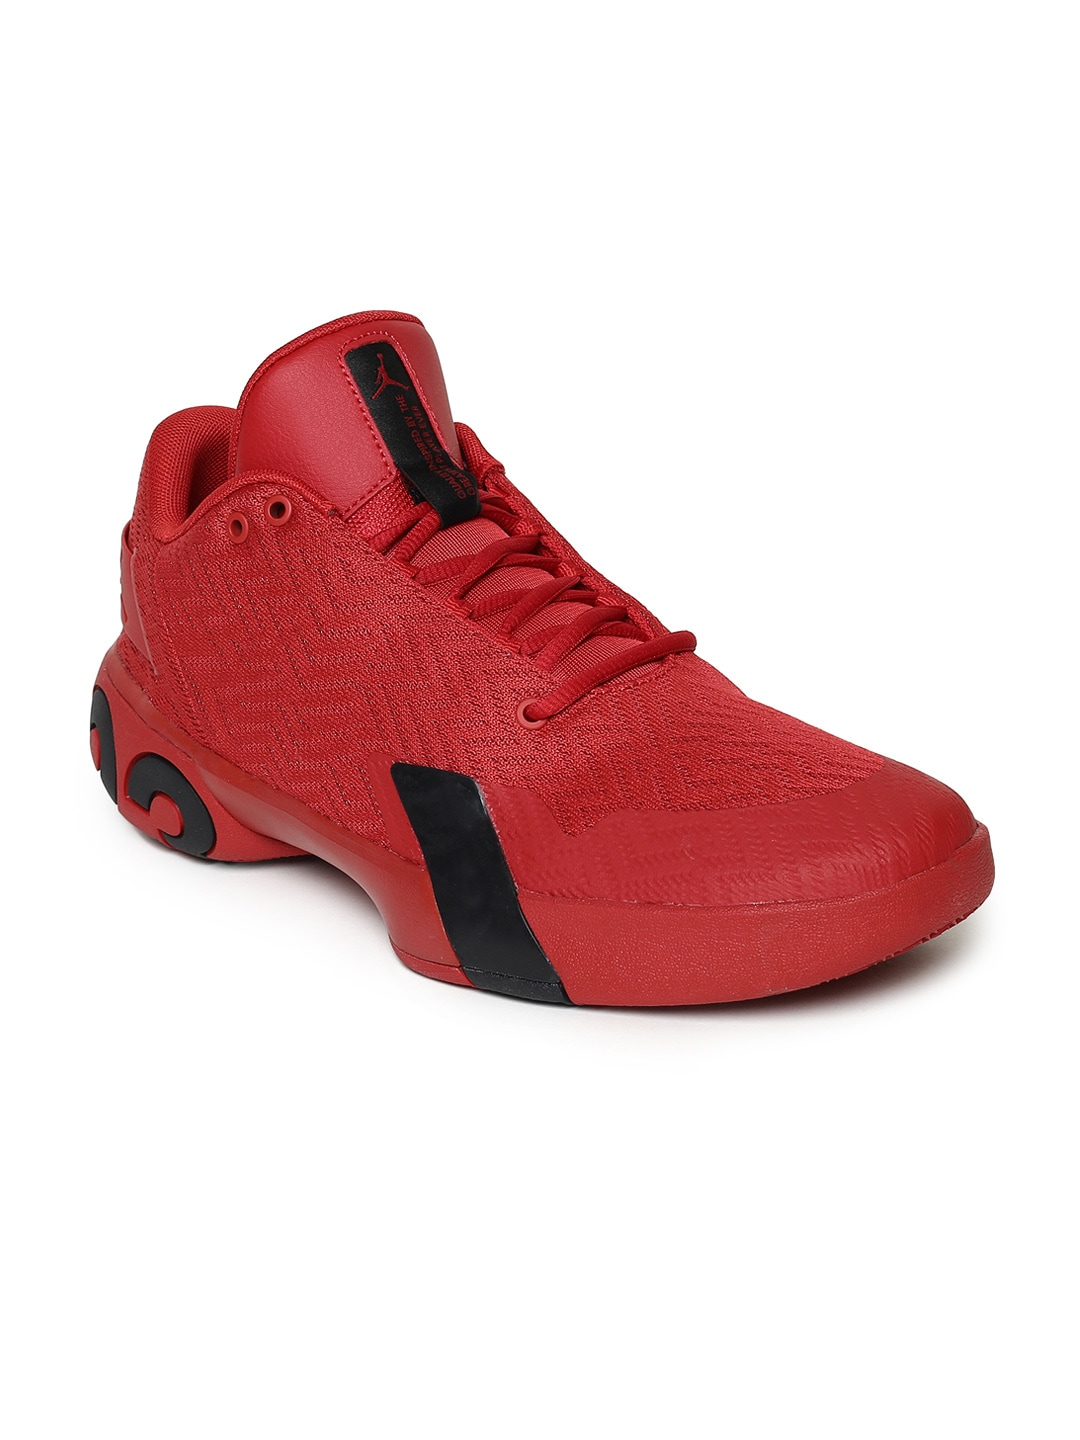 a8ec0403126a Nike Men Red Shoes - Buy Nike Men Red Shoes online in India